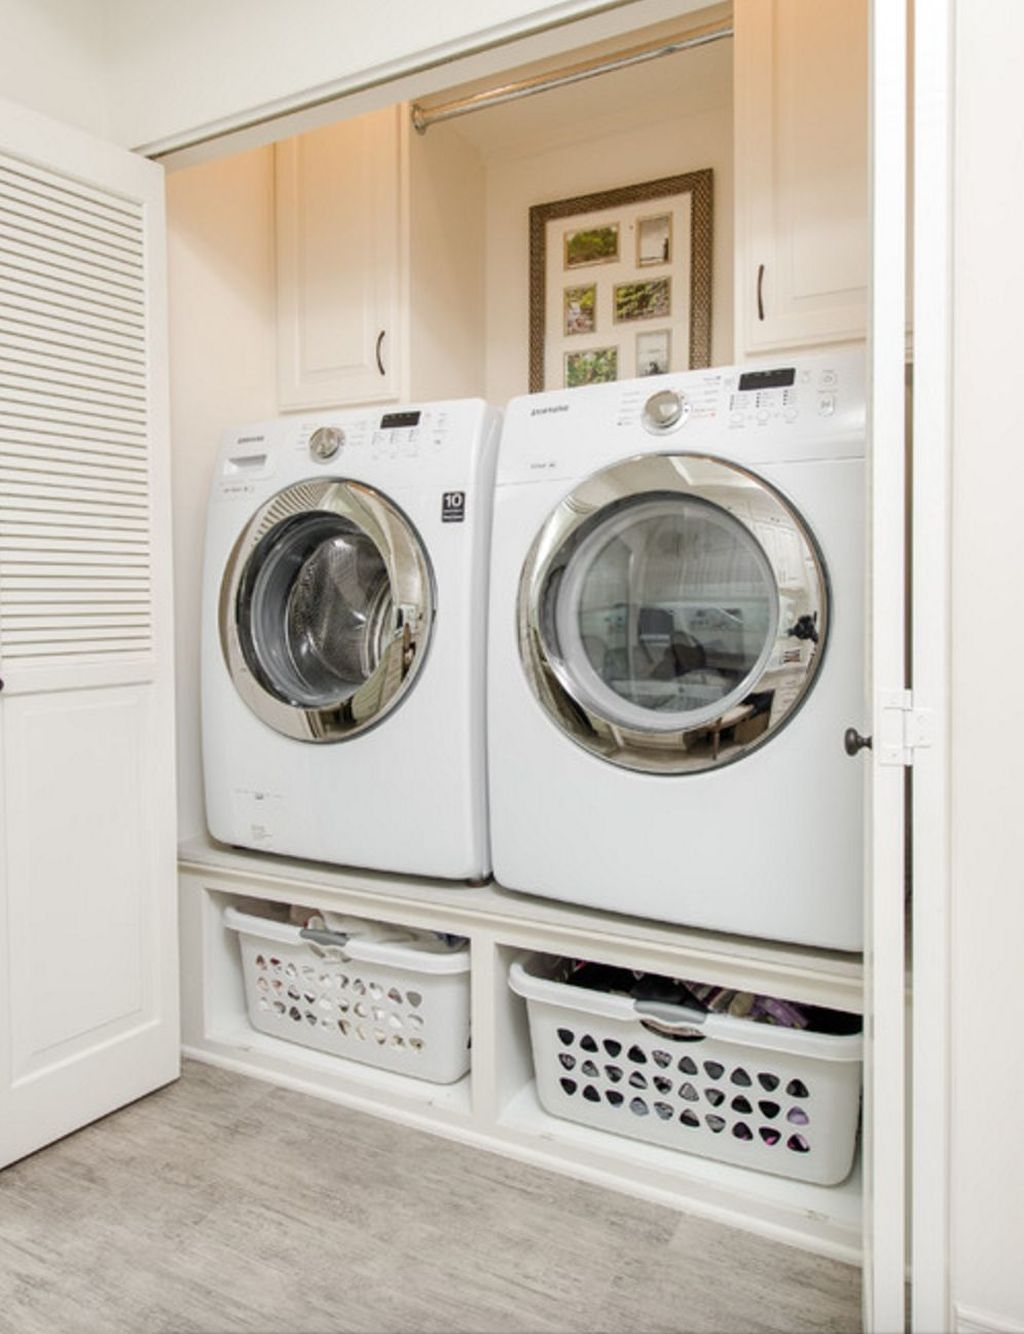 white washer and dryer are stored in closet with custom cabinets and shelving for two laundry baskets